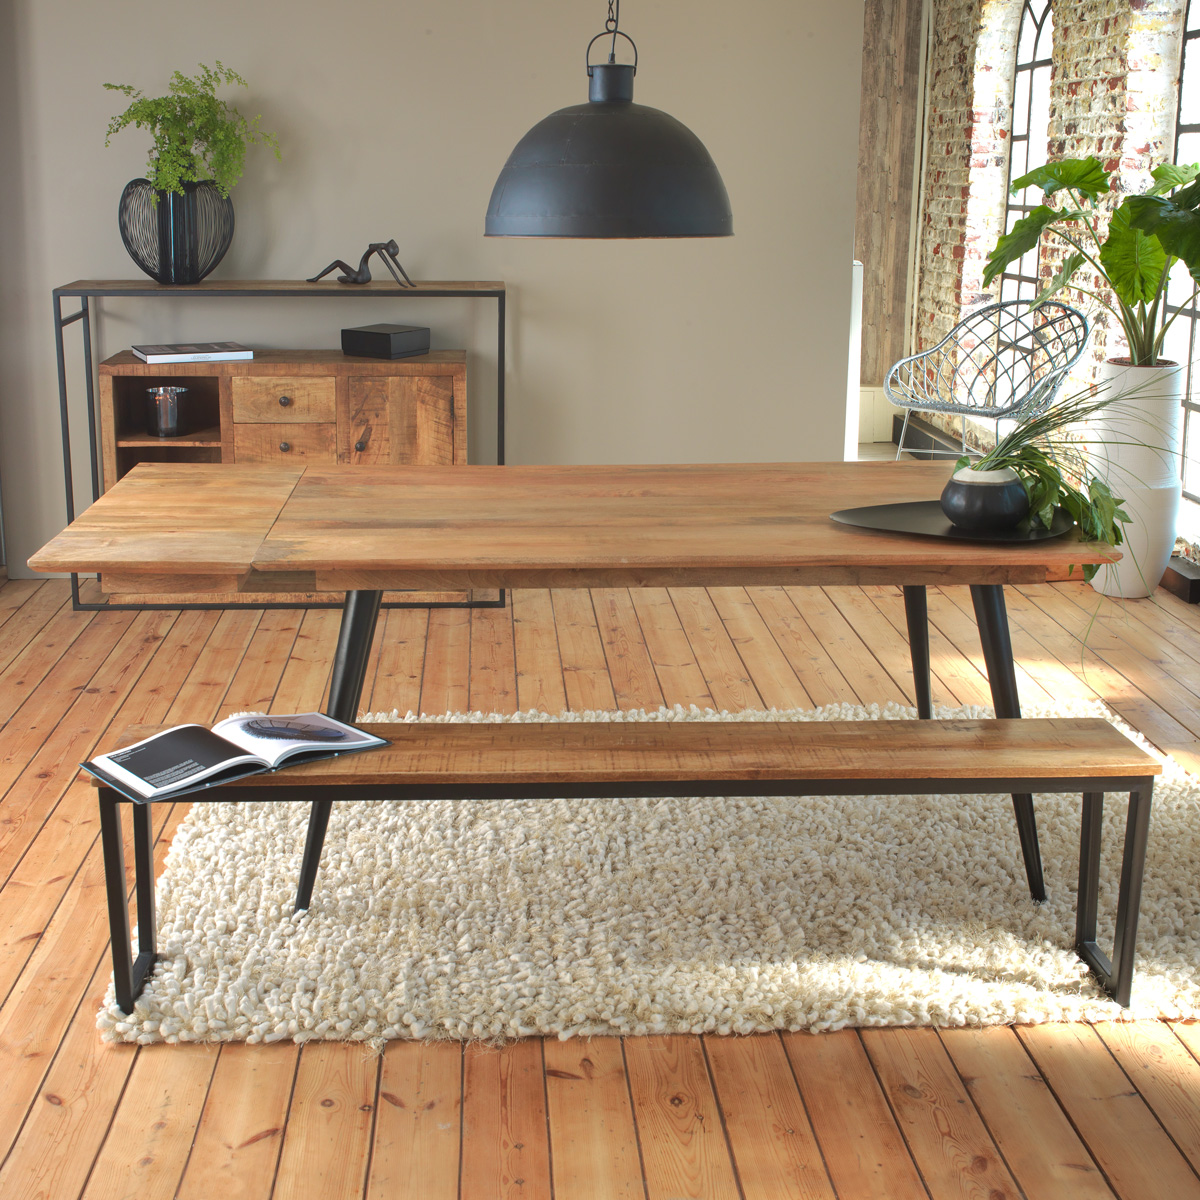 Made In Meubles Meuble Industriel Bois Massif Meuble Scandinave